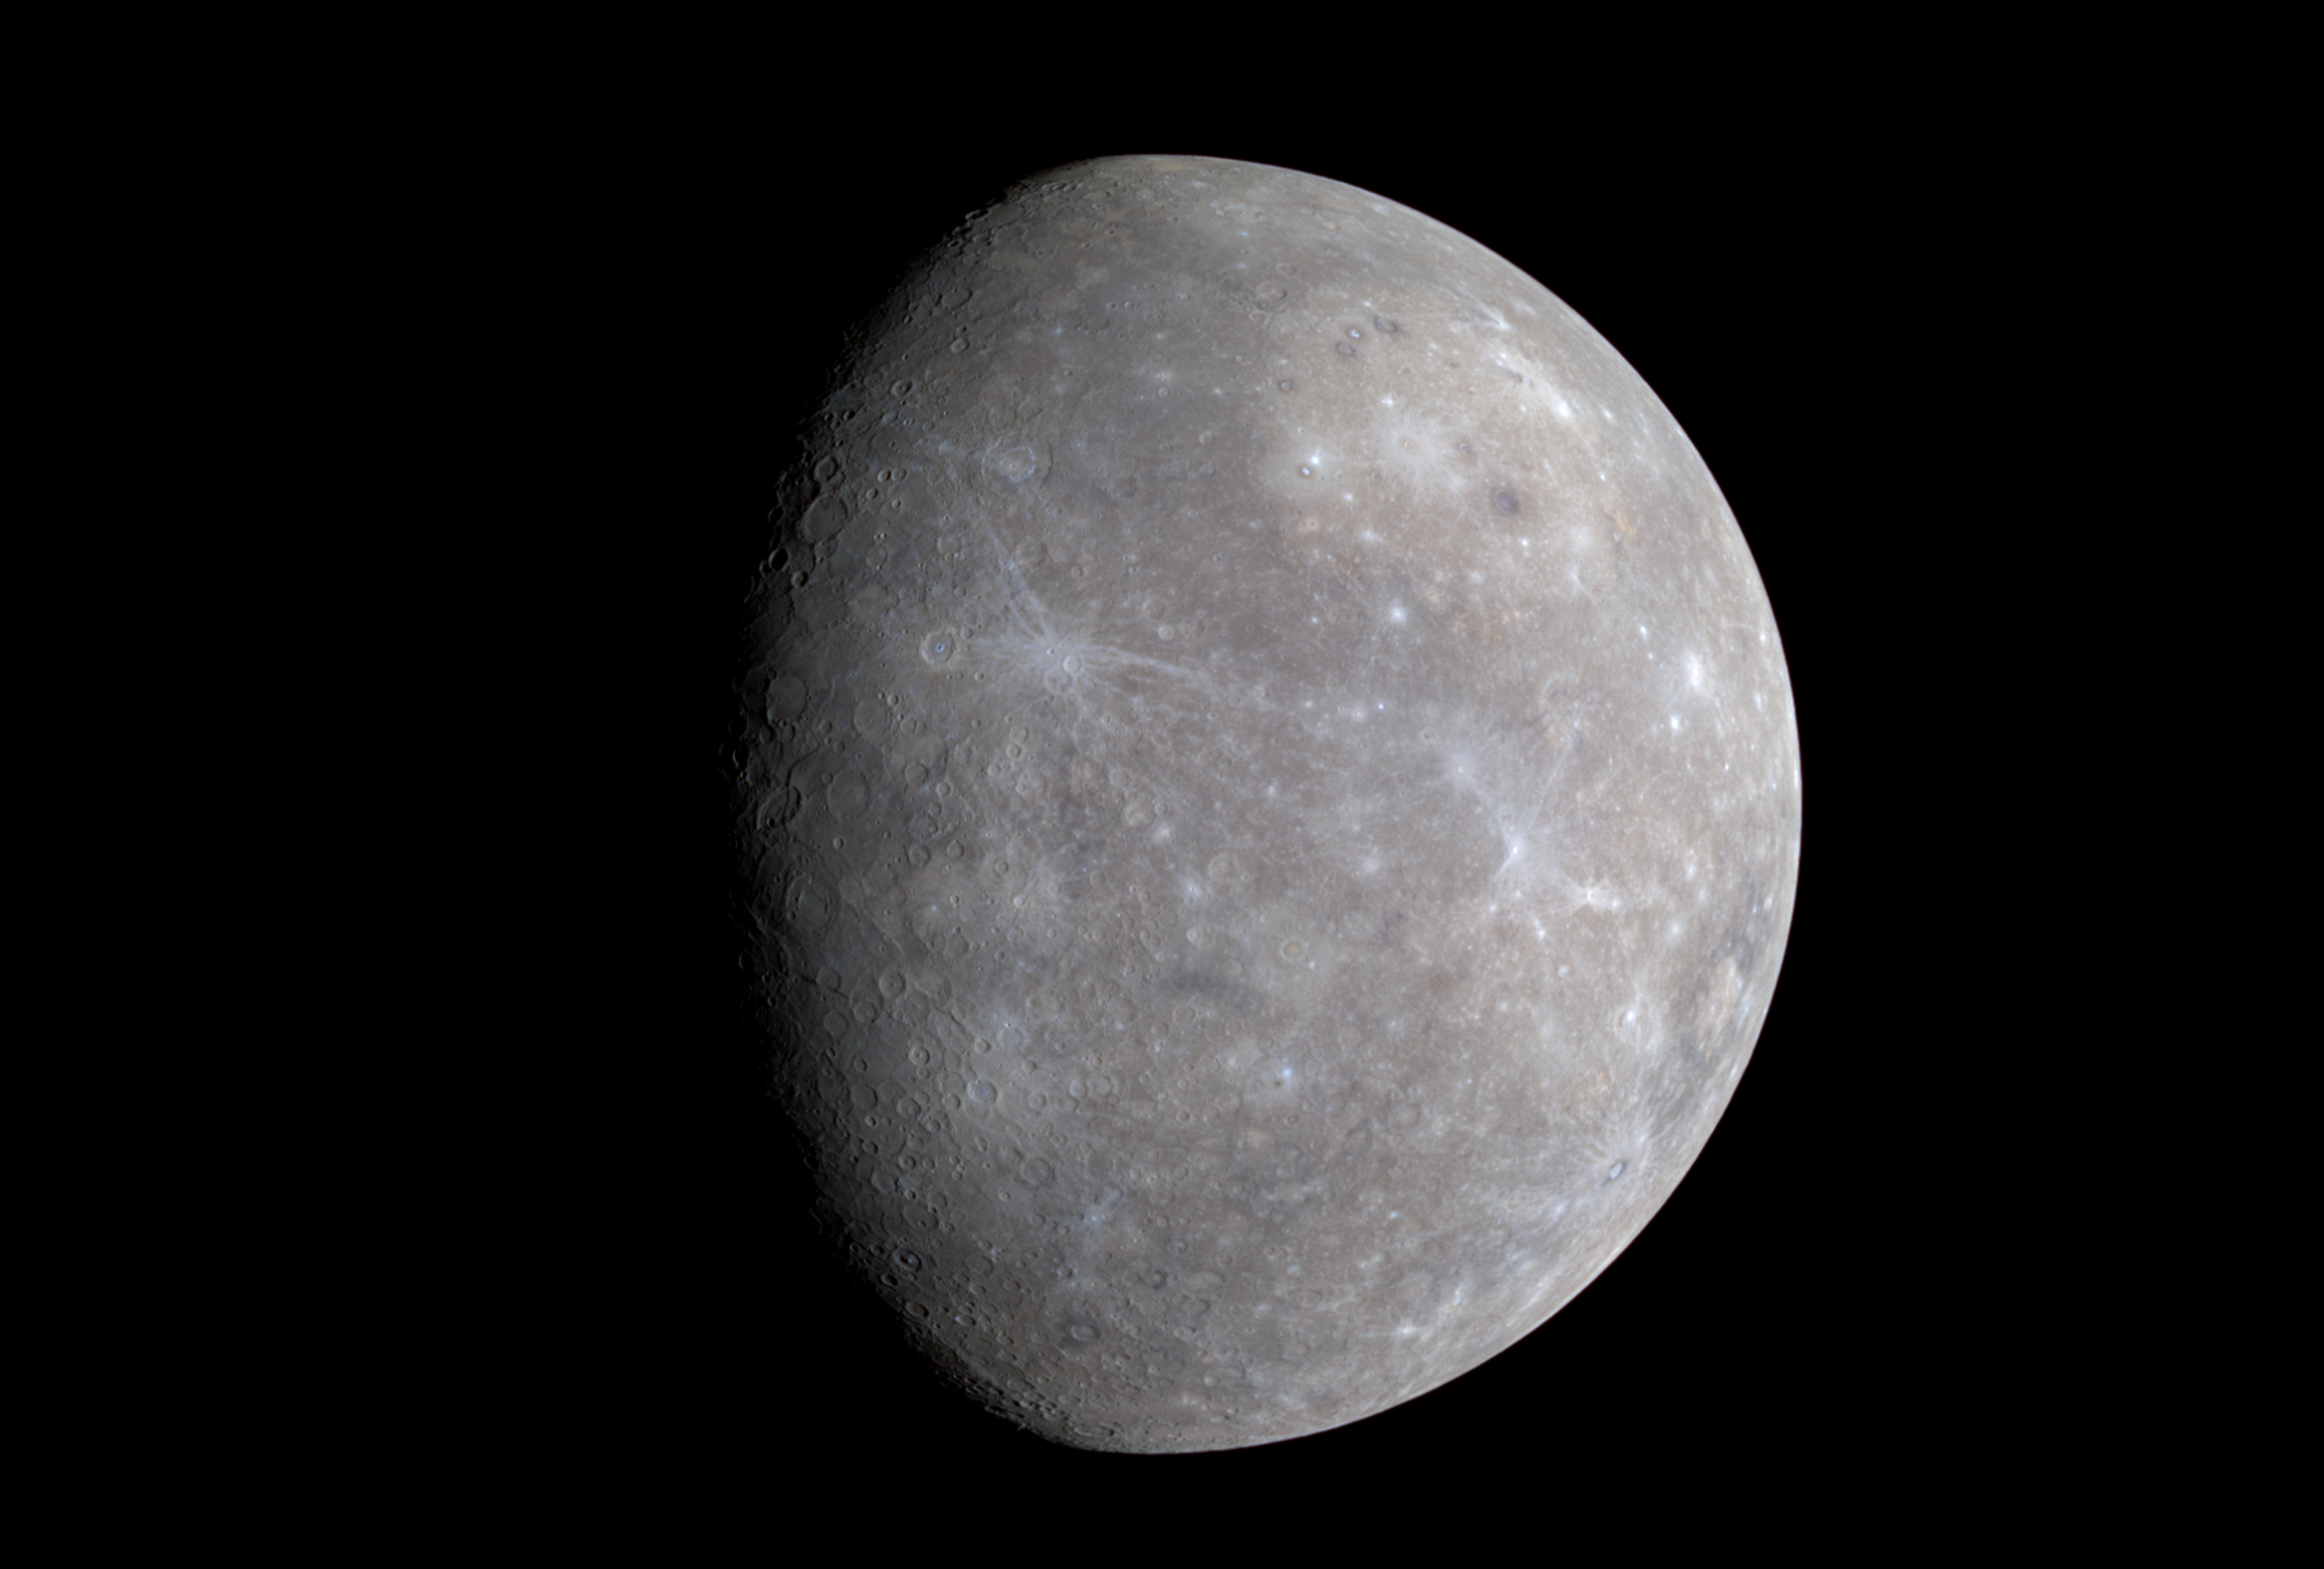 Planet Mercury Facts About the Planet Closest to the Sun